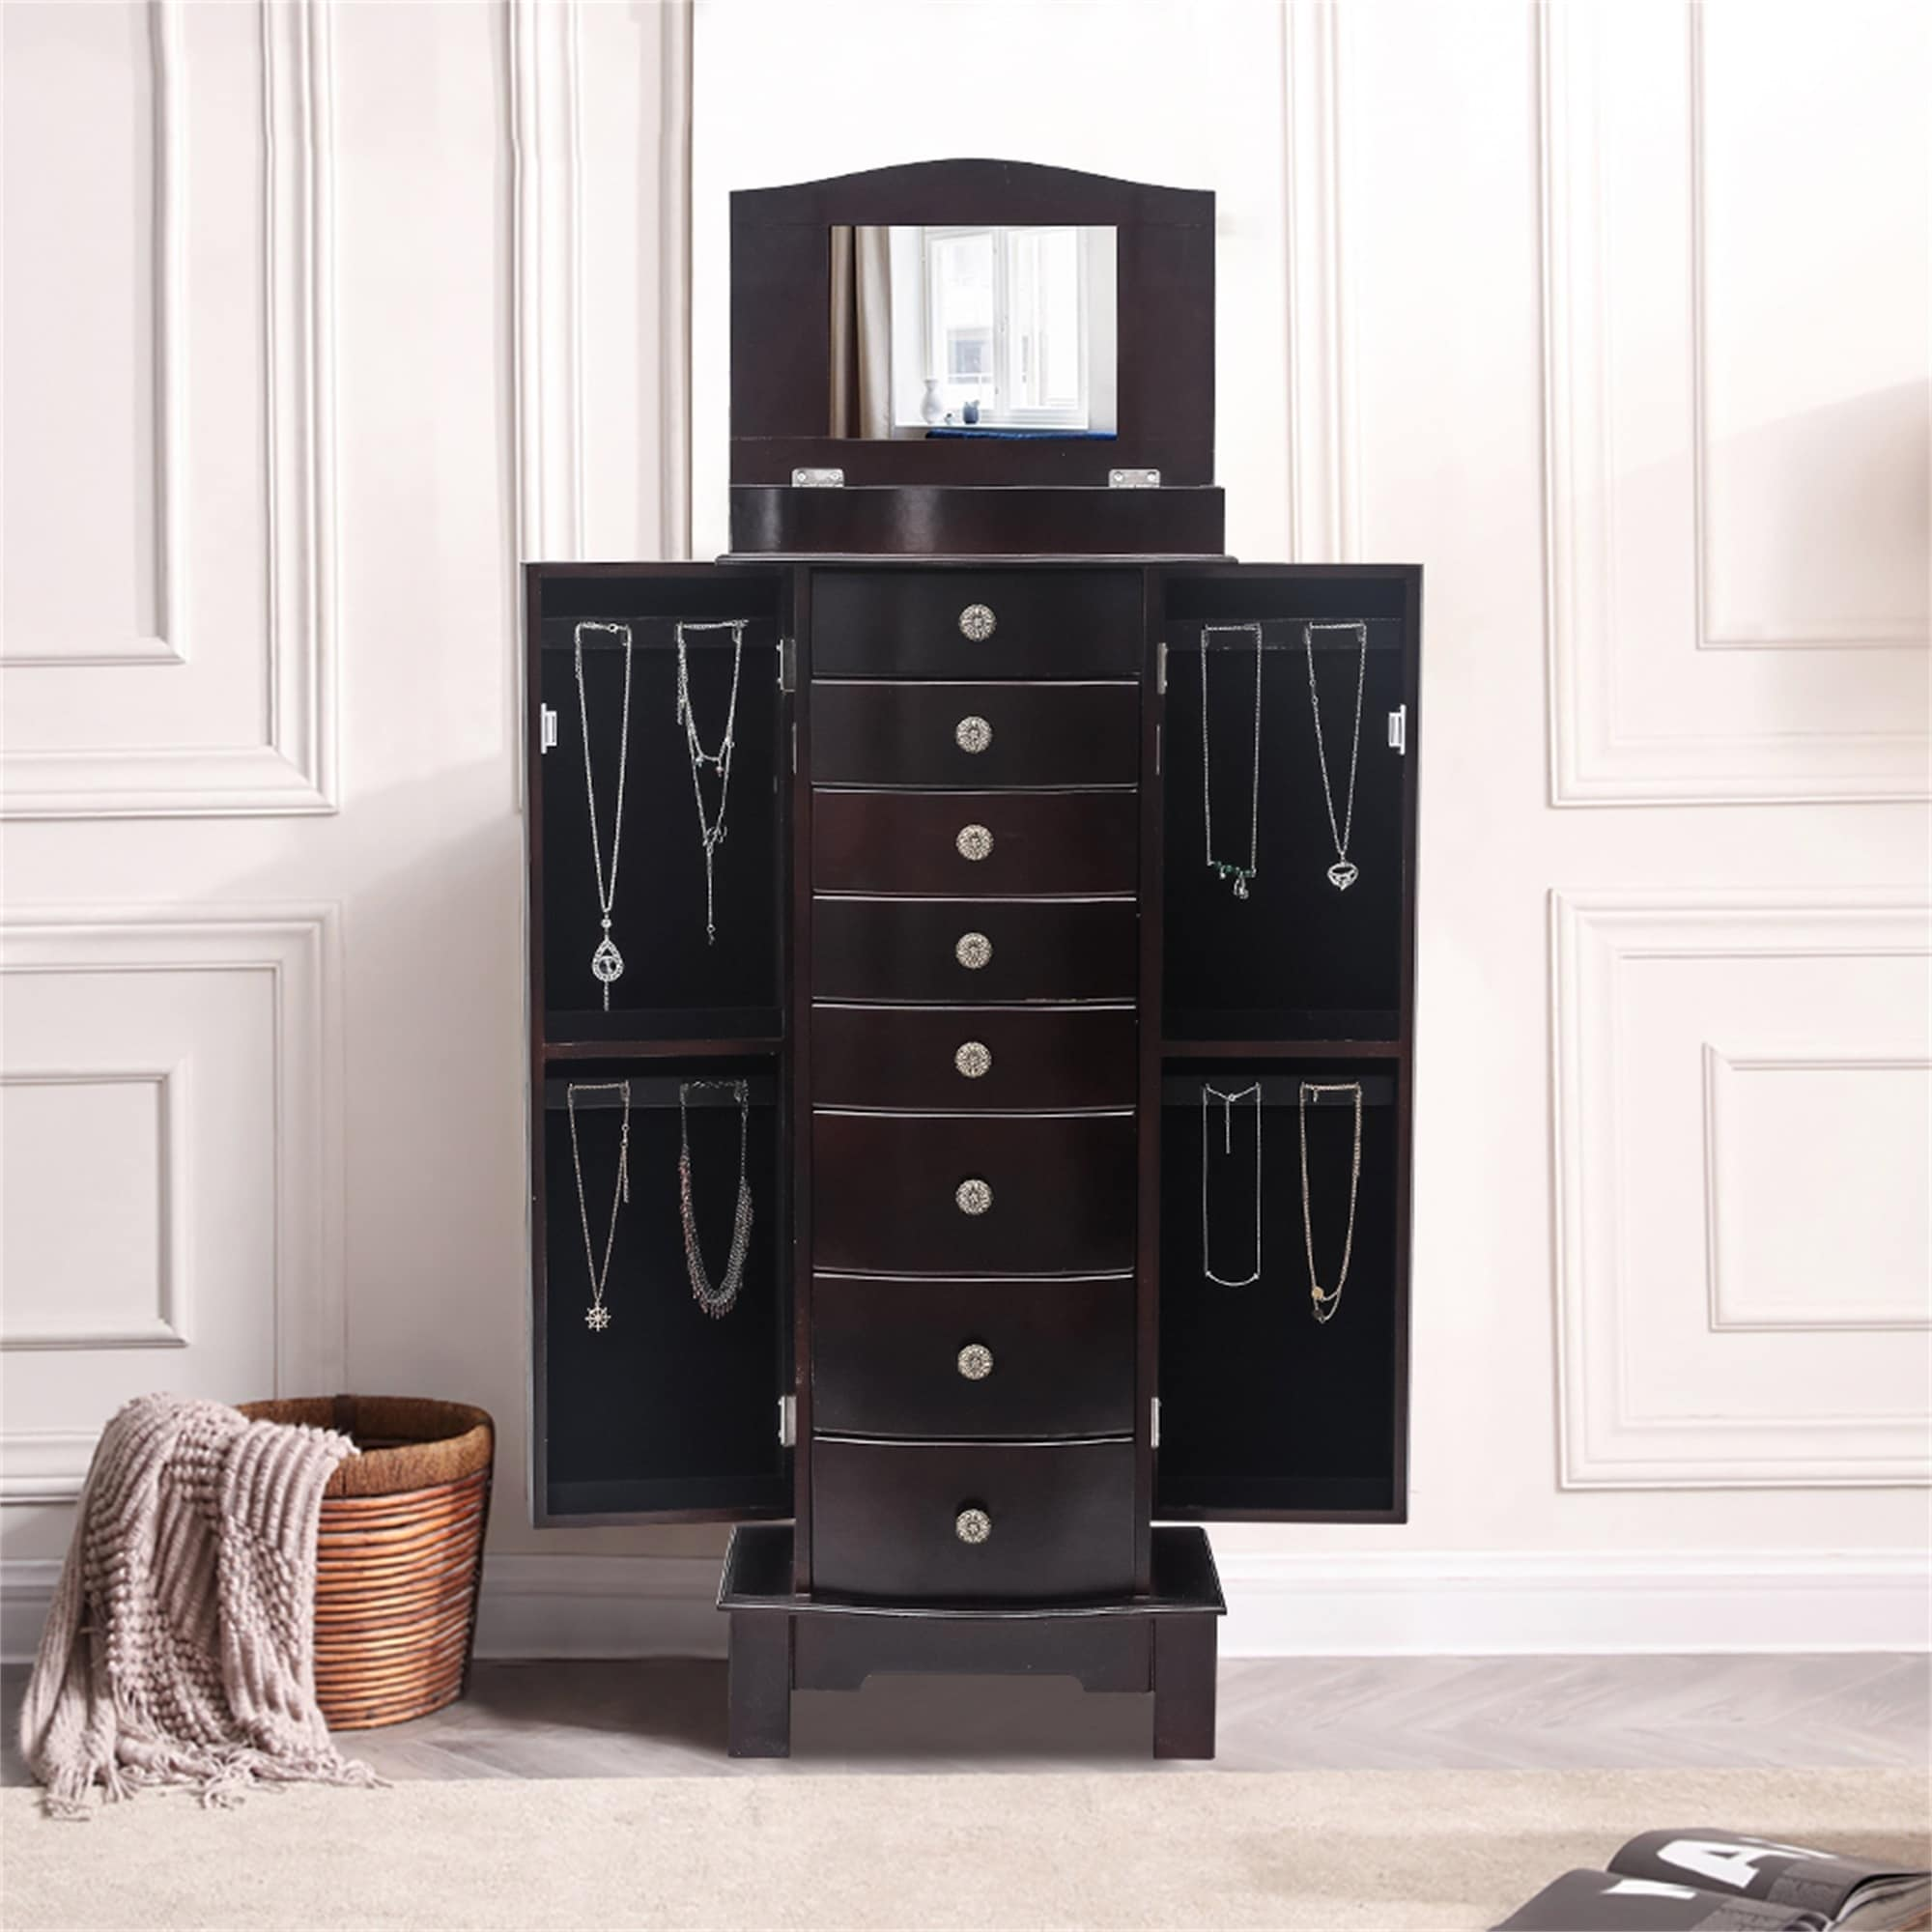 Image of: Shop Standing Jewelry Armoire With Mirror 5 Drawers 6 Necklace Hooks On Sale Overstock 31721612